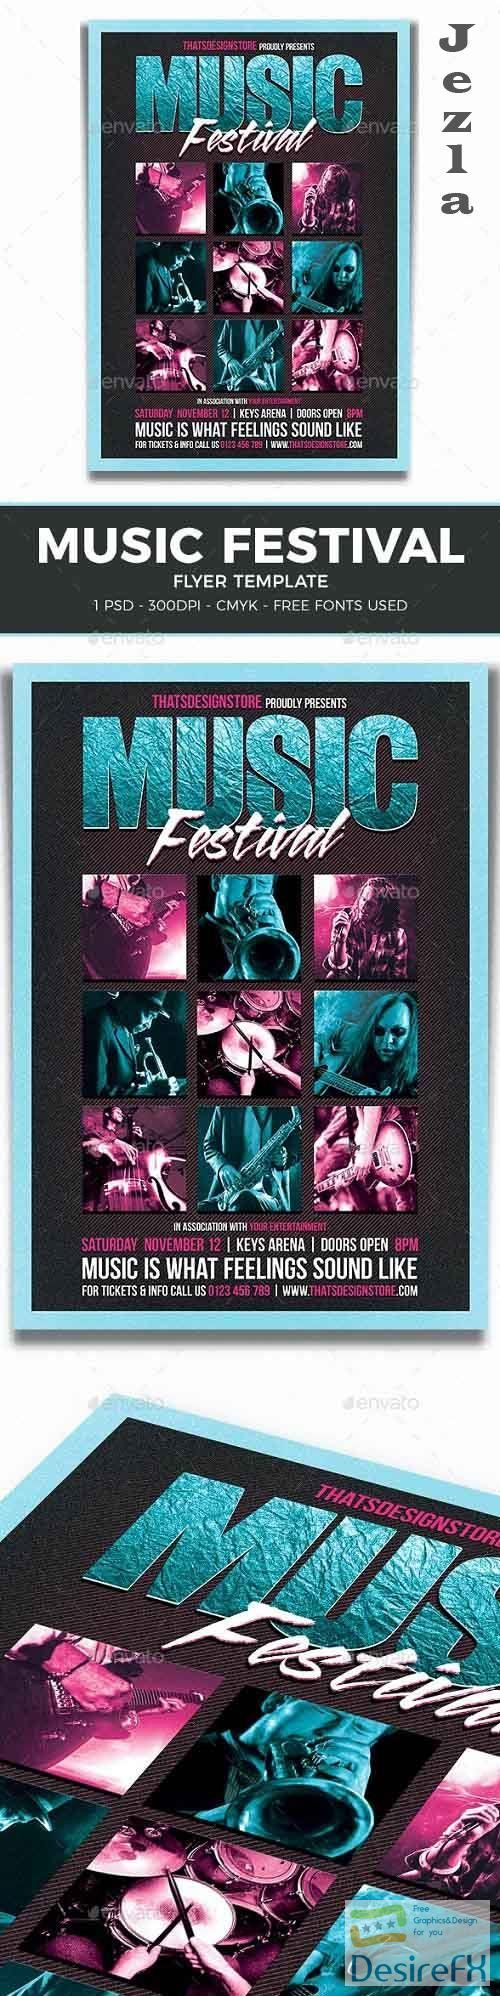 Music Festival Flyer Template V4 - 11324450 - 260221